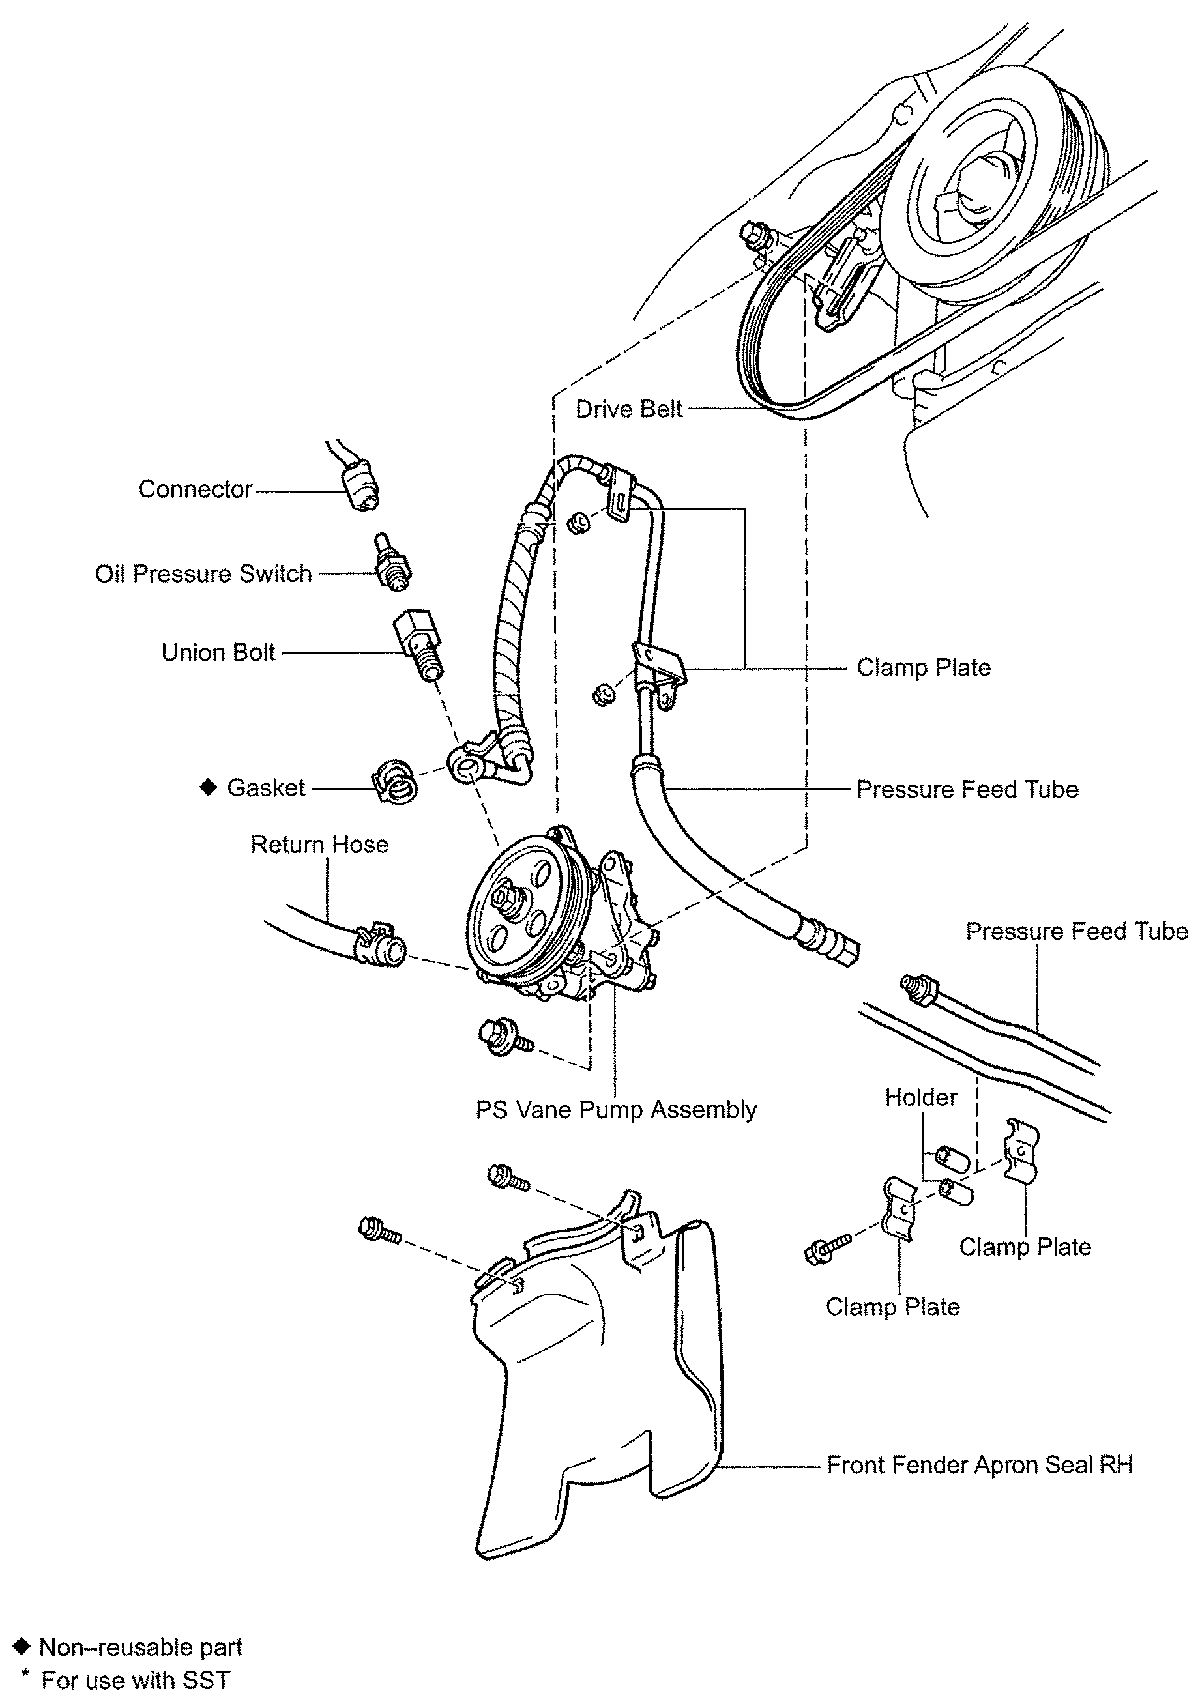 2004-toyota-avalon-power-steering-pump-diagram